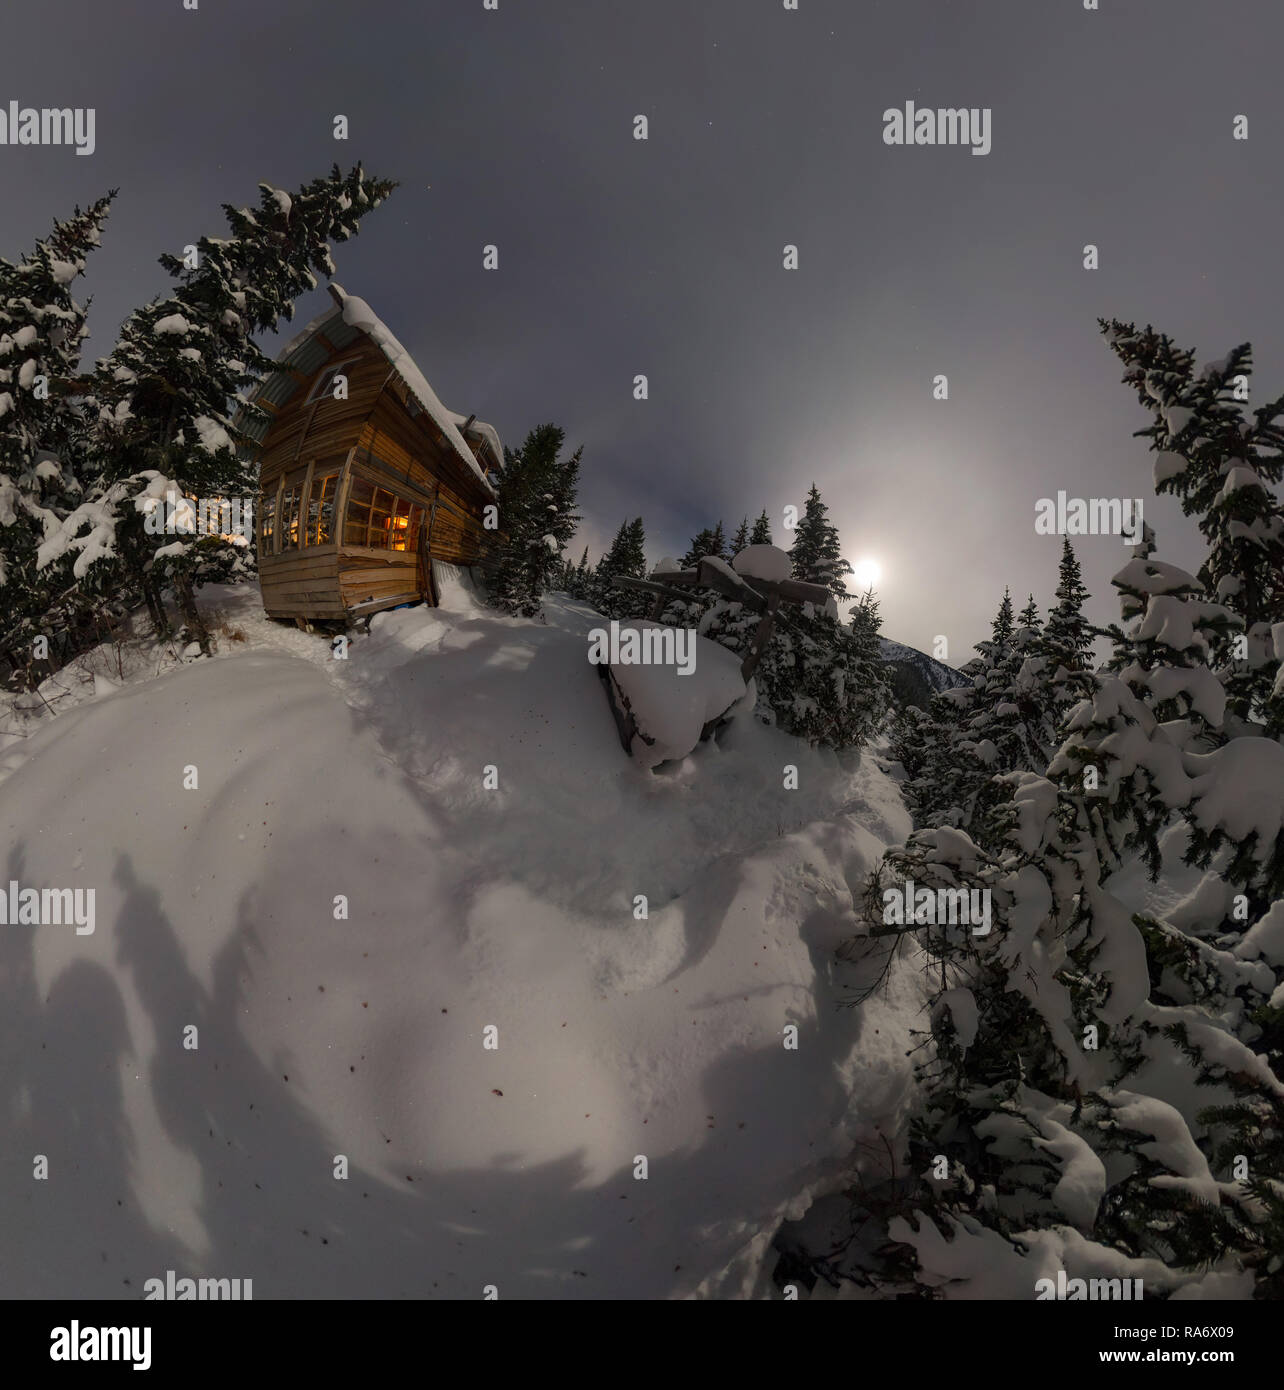 aerial view house chalet during a snowfall in the trees winter forest at night in the moonlight - Stock Image